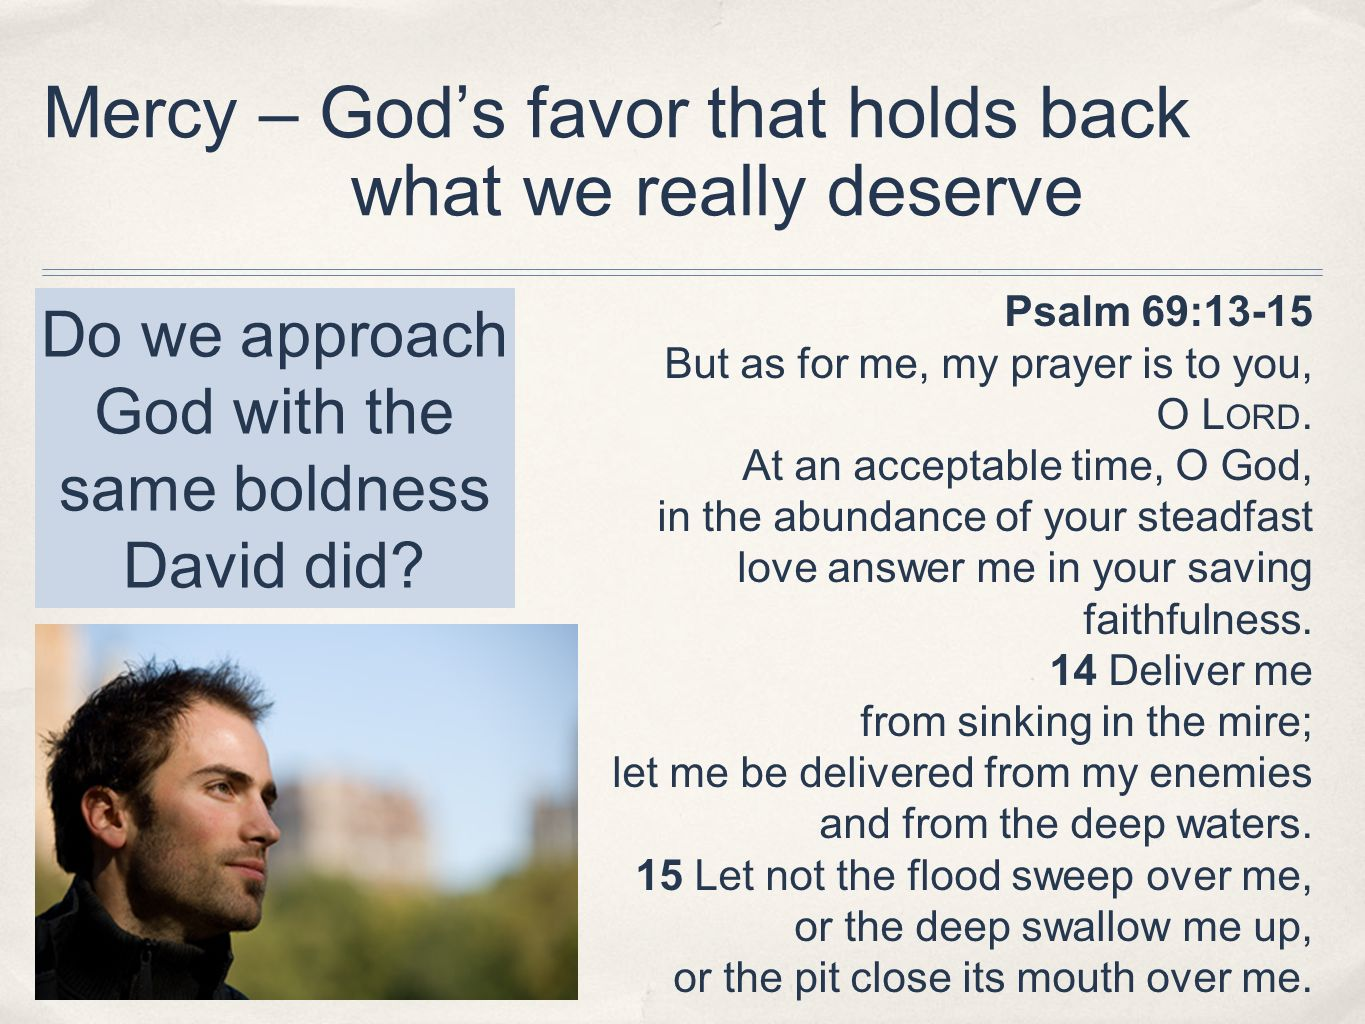 Mercy – Gods favor that holds back what we really deserve Psalm 69:13-15 But as for me, my prayer is to you, O L ORD. At an acceptable time, O God, in